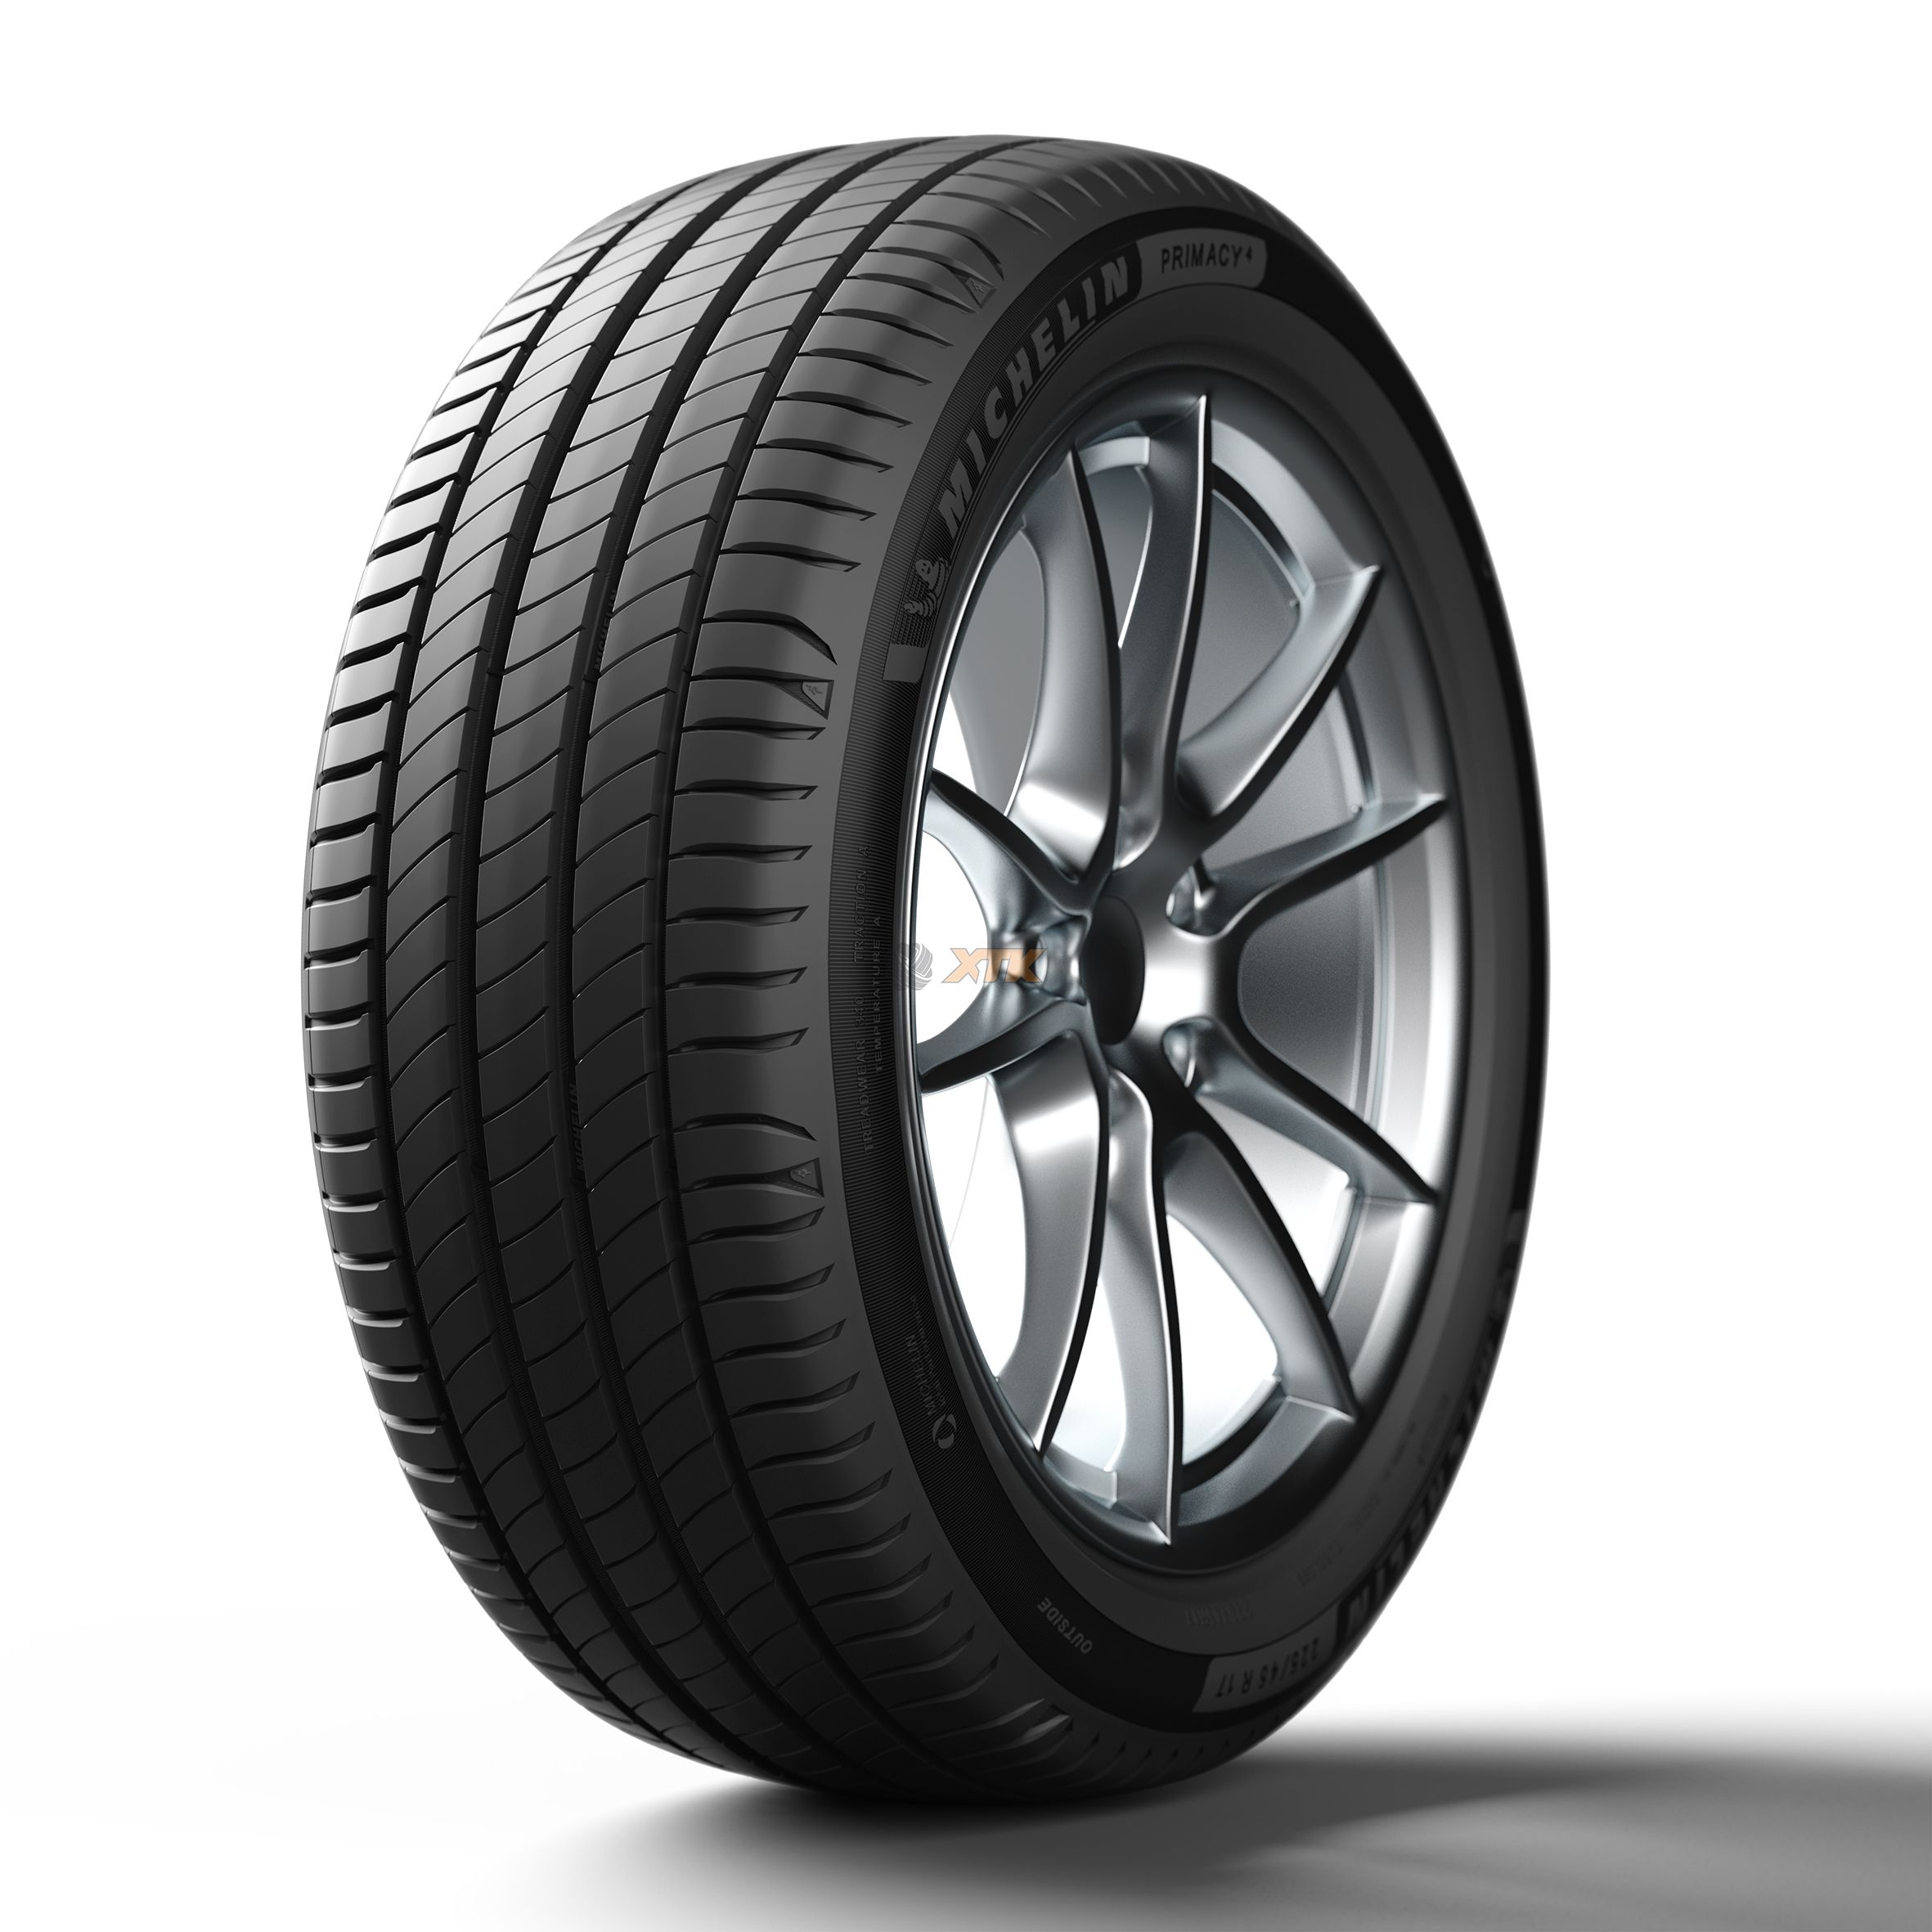 Автошина 215/60R16 99V Michelin PRIMACY 4